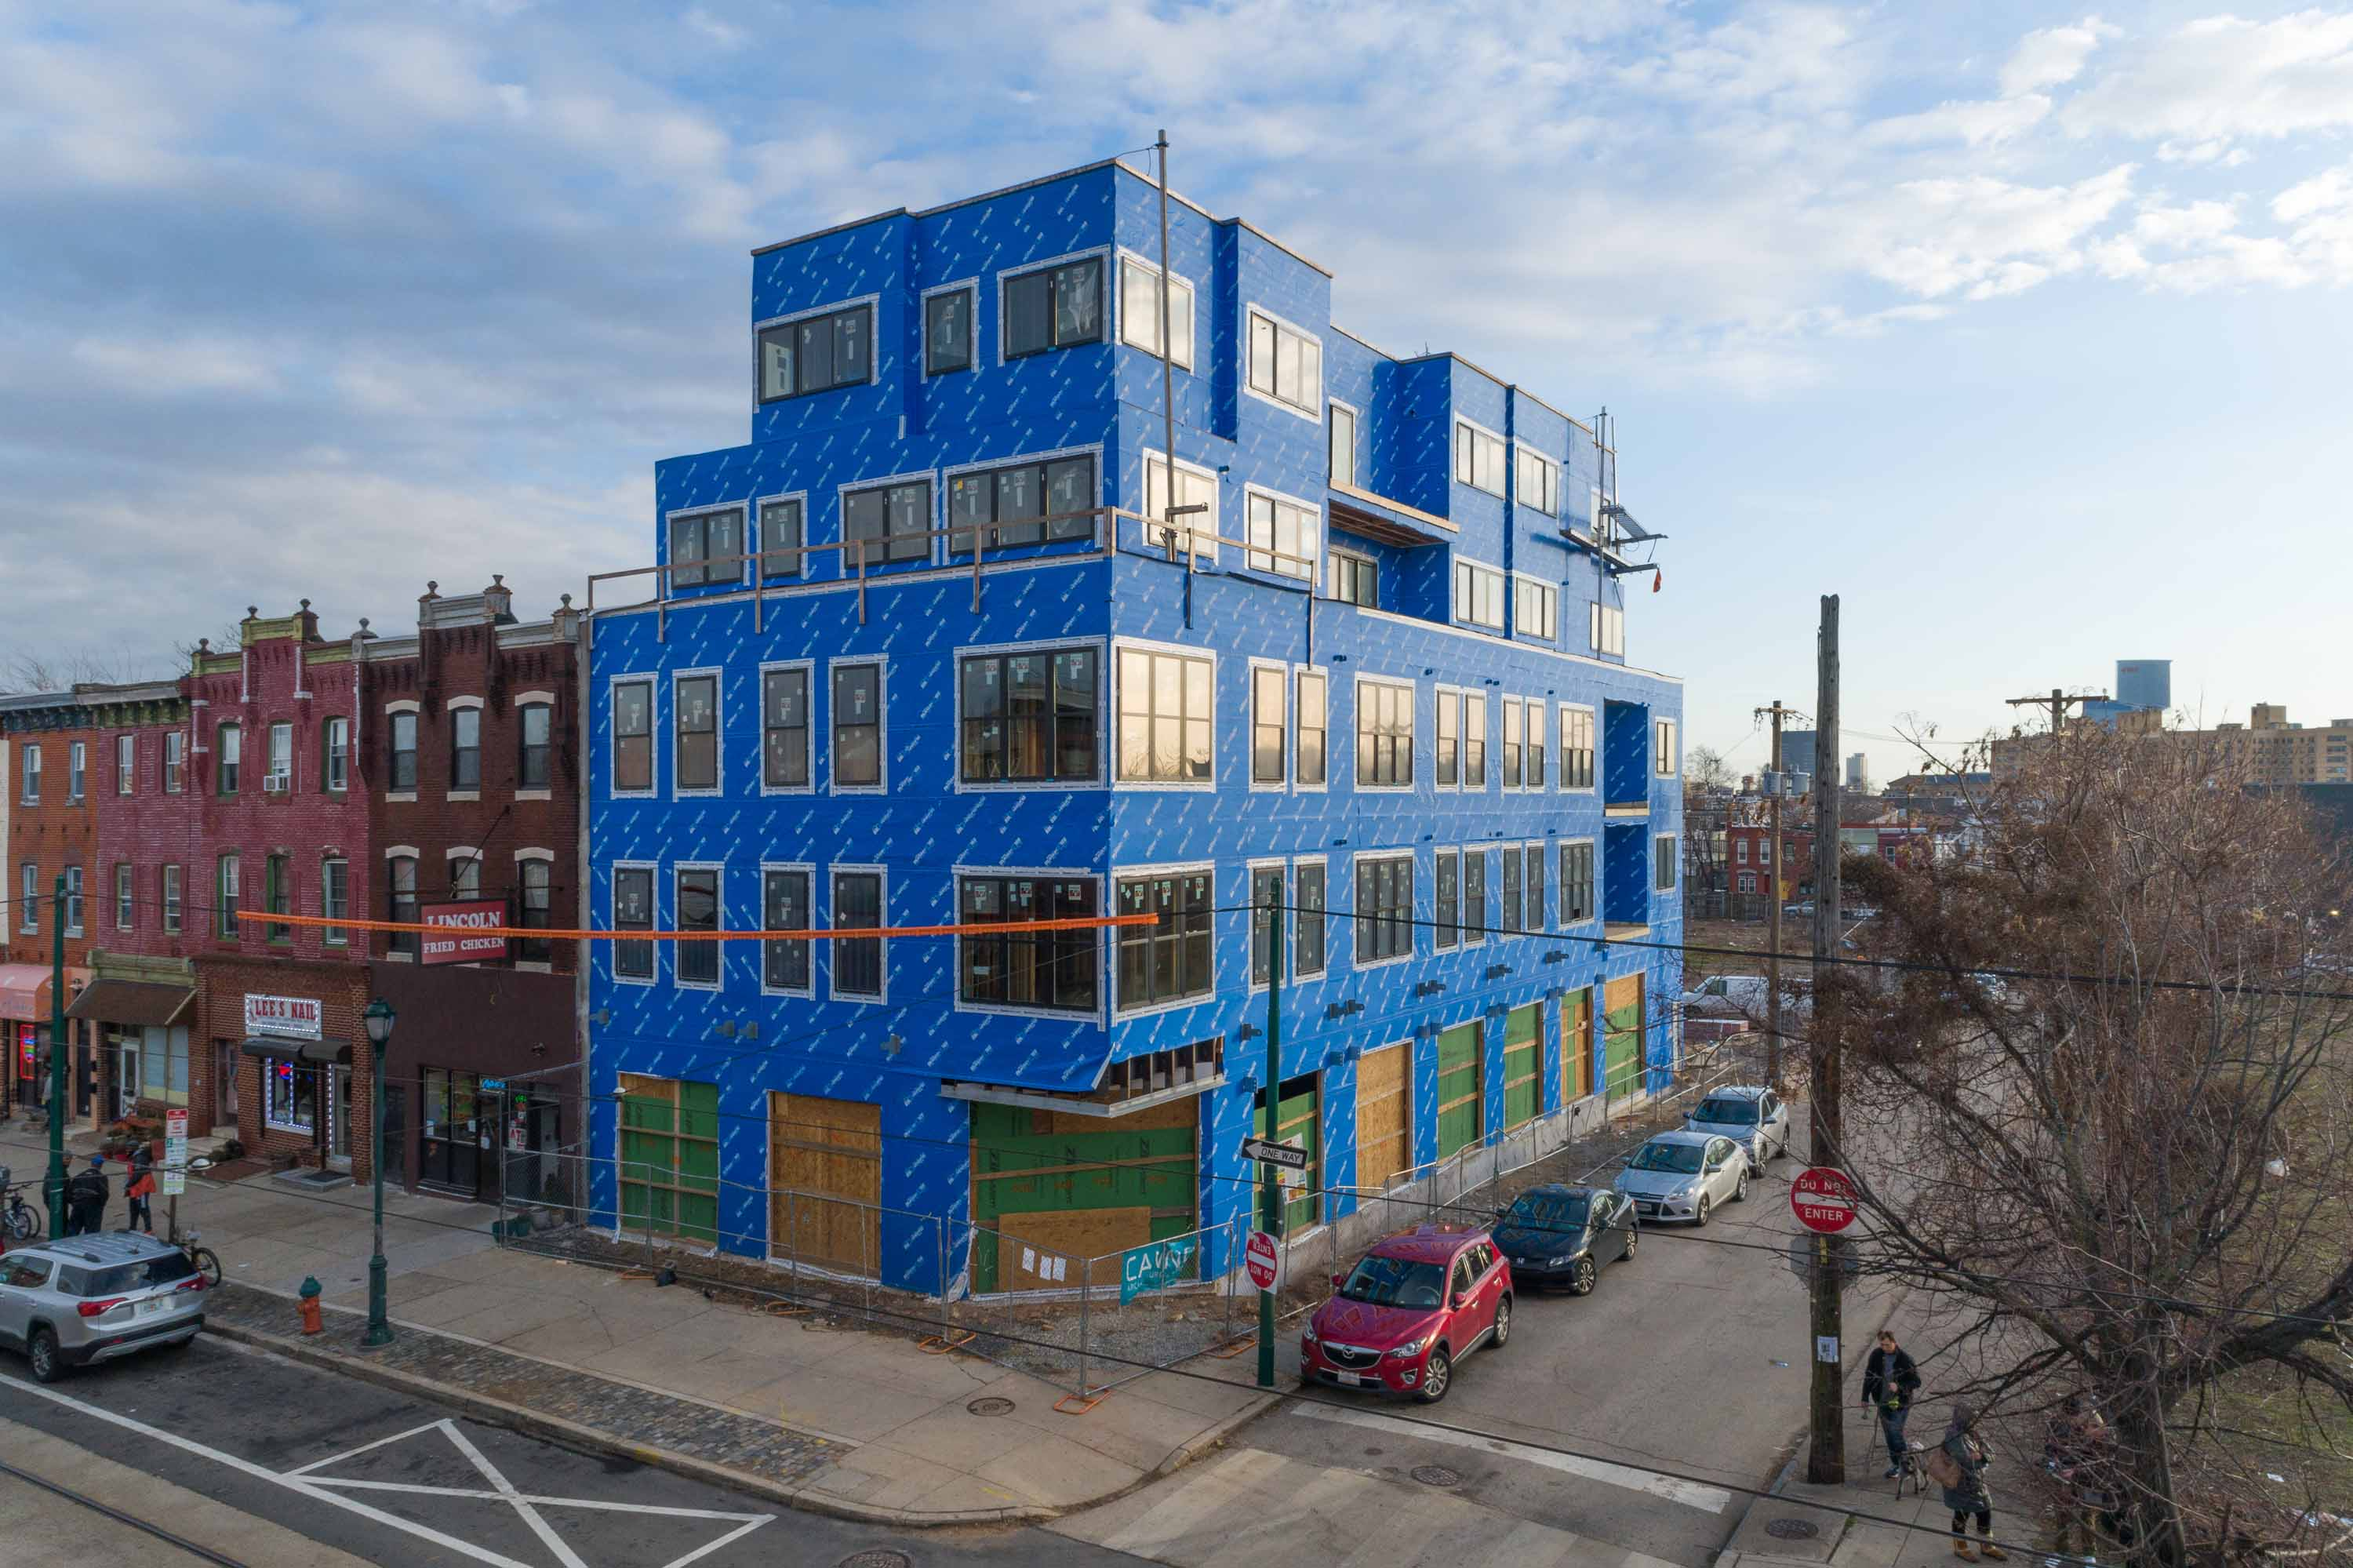 2616-18 GIRARD AVE 2020-01 AERIAL WEFILMPHILLY-0407